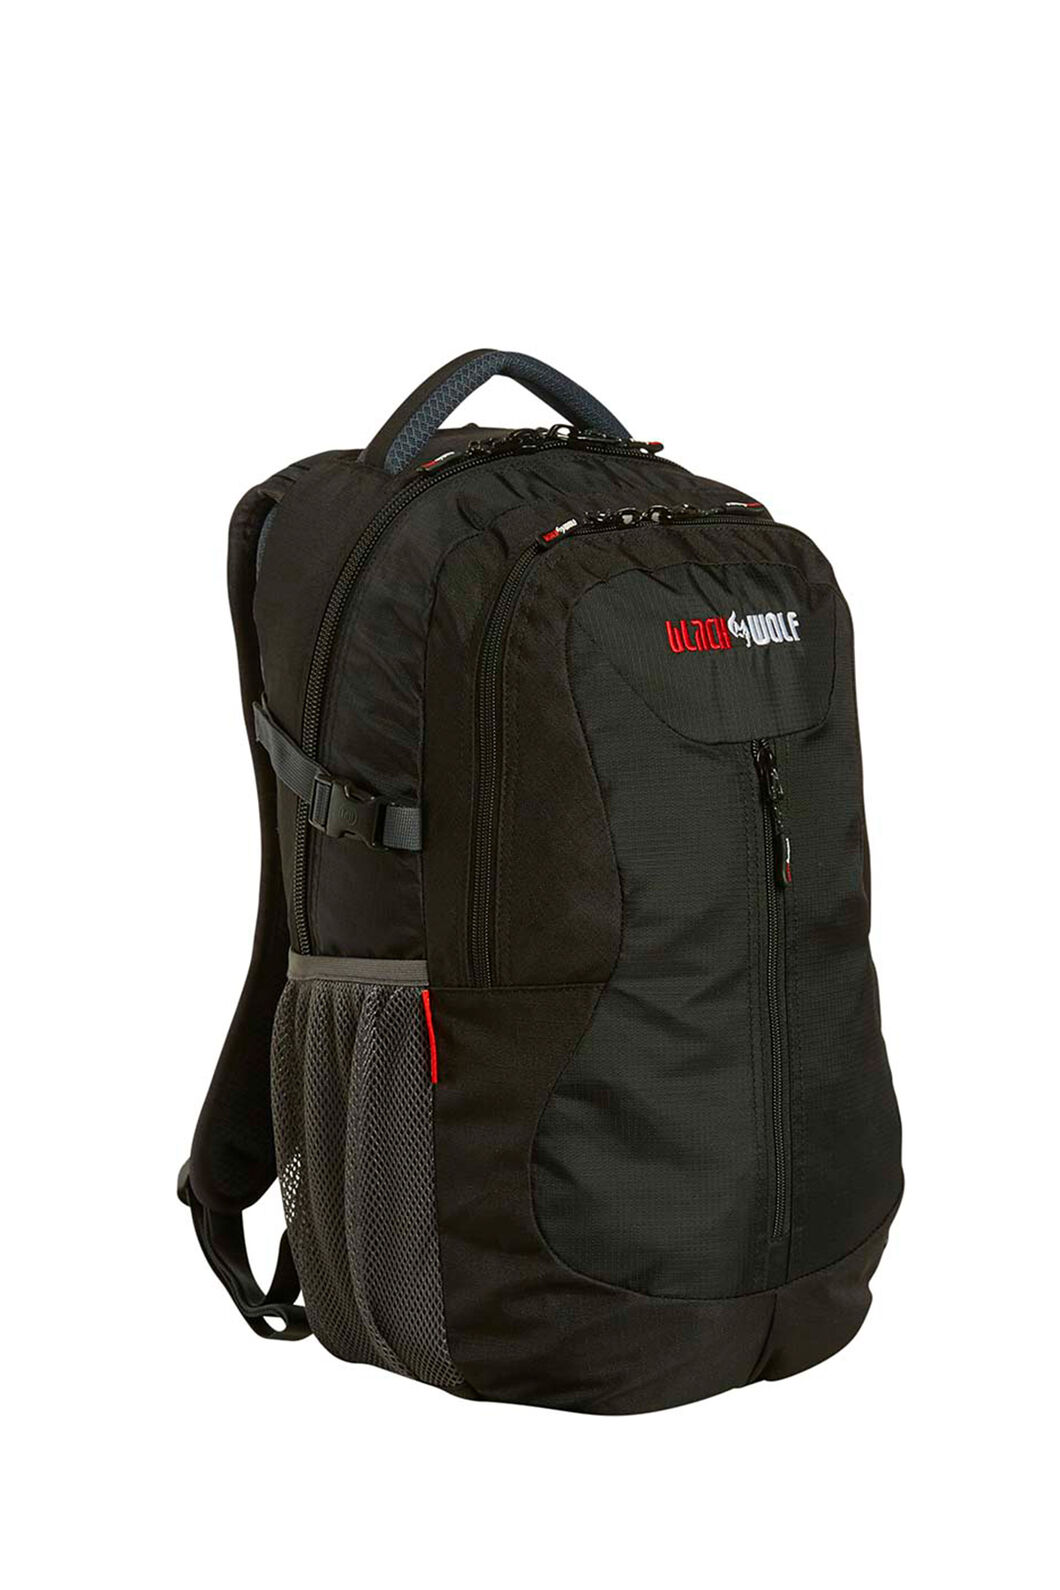 BlackWolf Dart 30L Day Pack, Black, hi-res